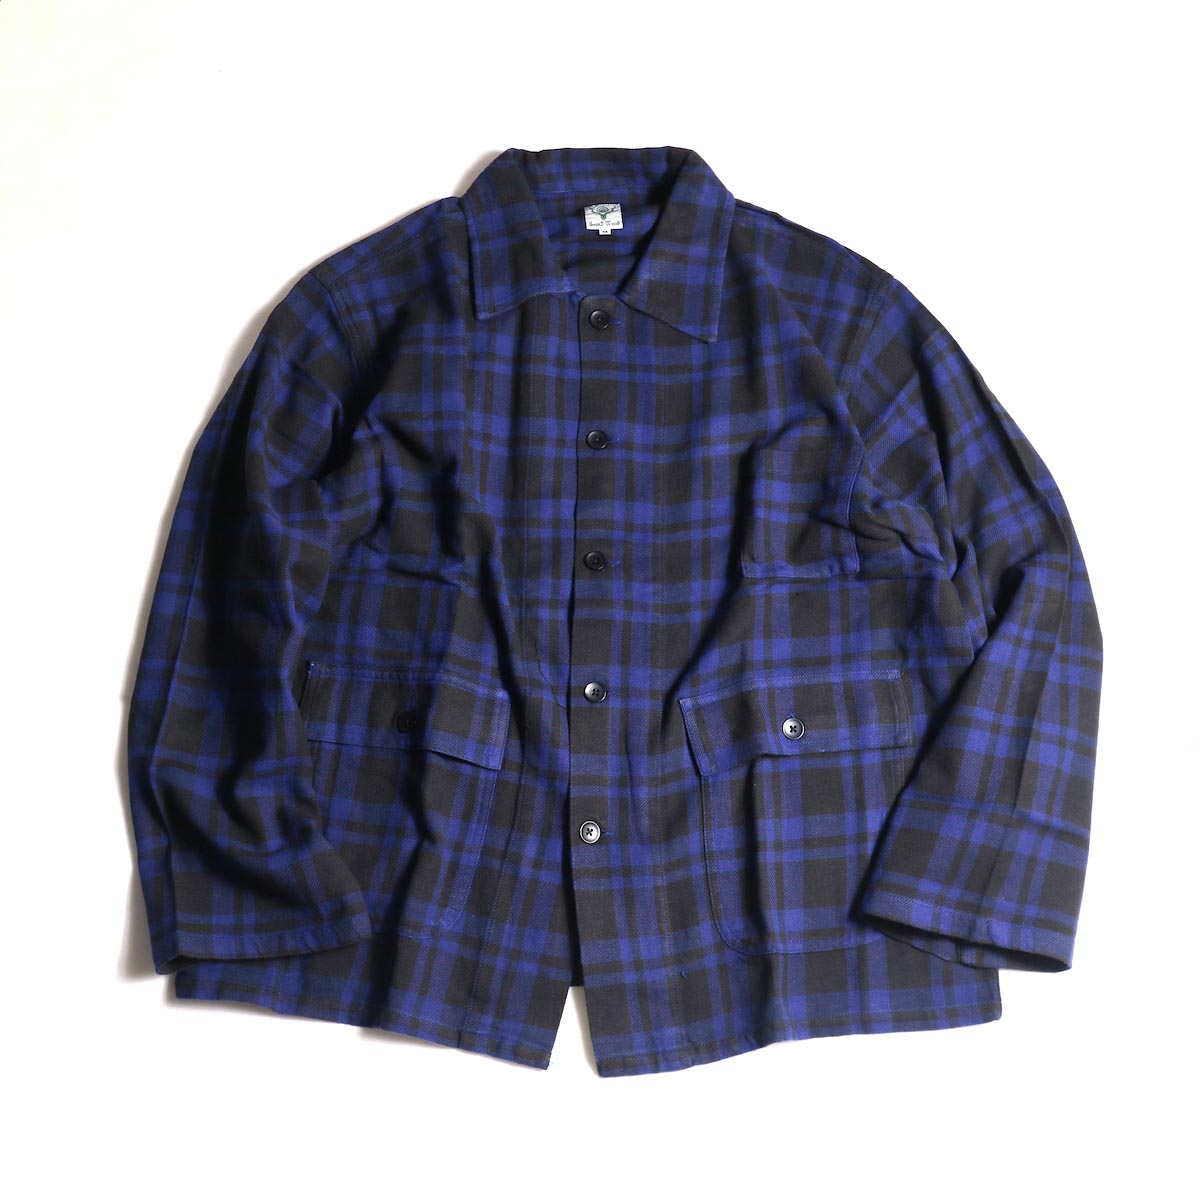 South2 West8 / Hunting Shirt -Plaid Twill (Blue/Black)